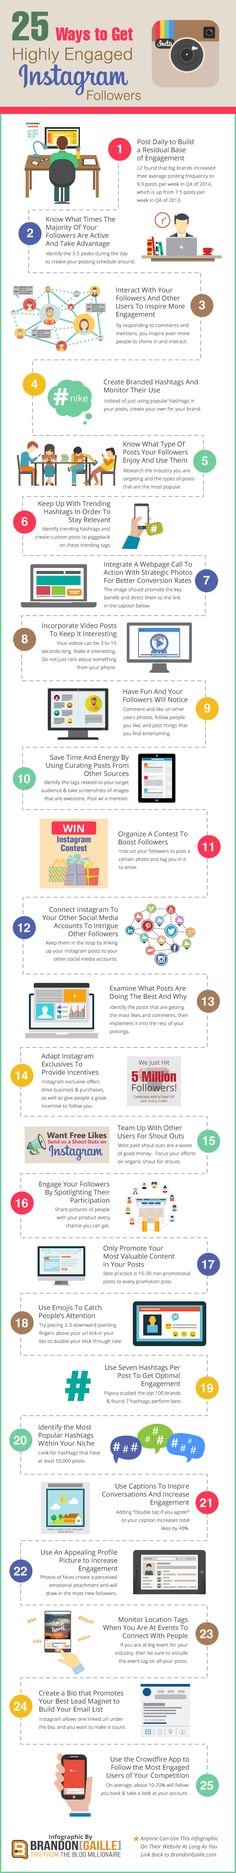 25 Ways To Get Highly Engaged Instagram Followers - If Instagram is a lonely place for you then these 25 tips will help you grow your following and get more engaging Instagram followers. Simple as that! #infographic